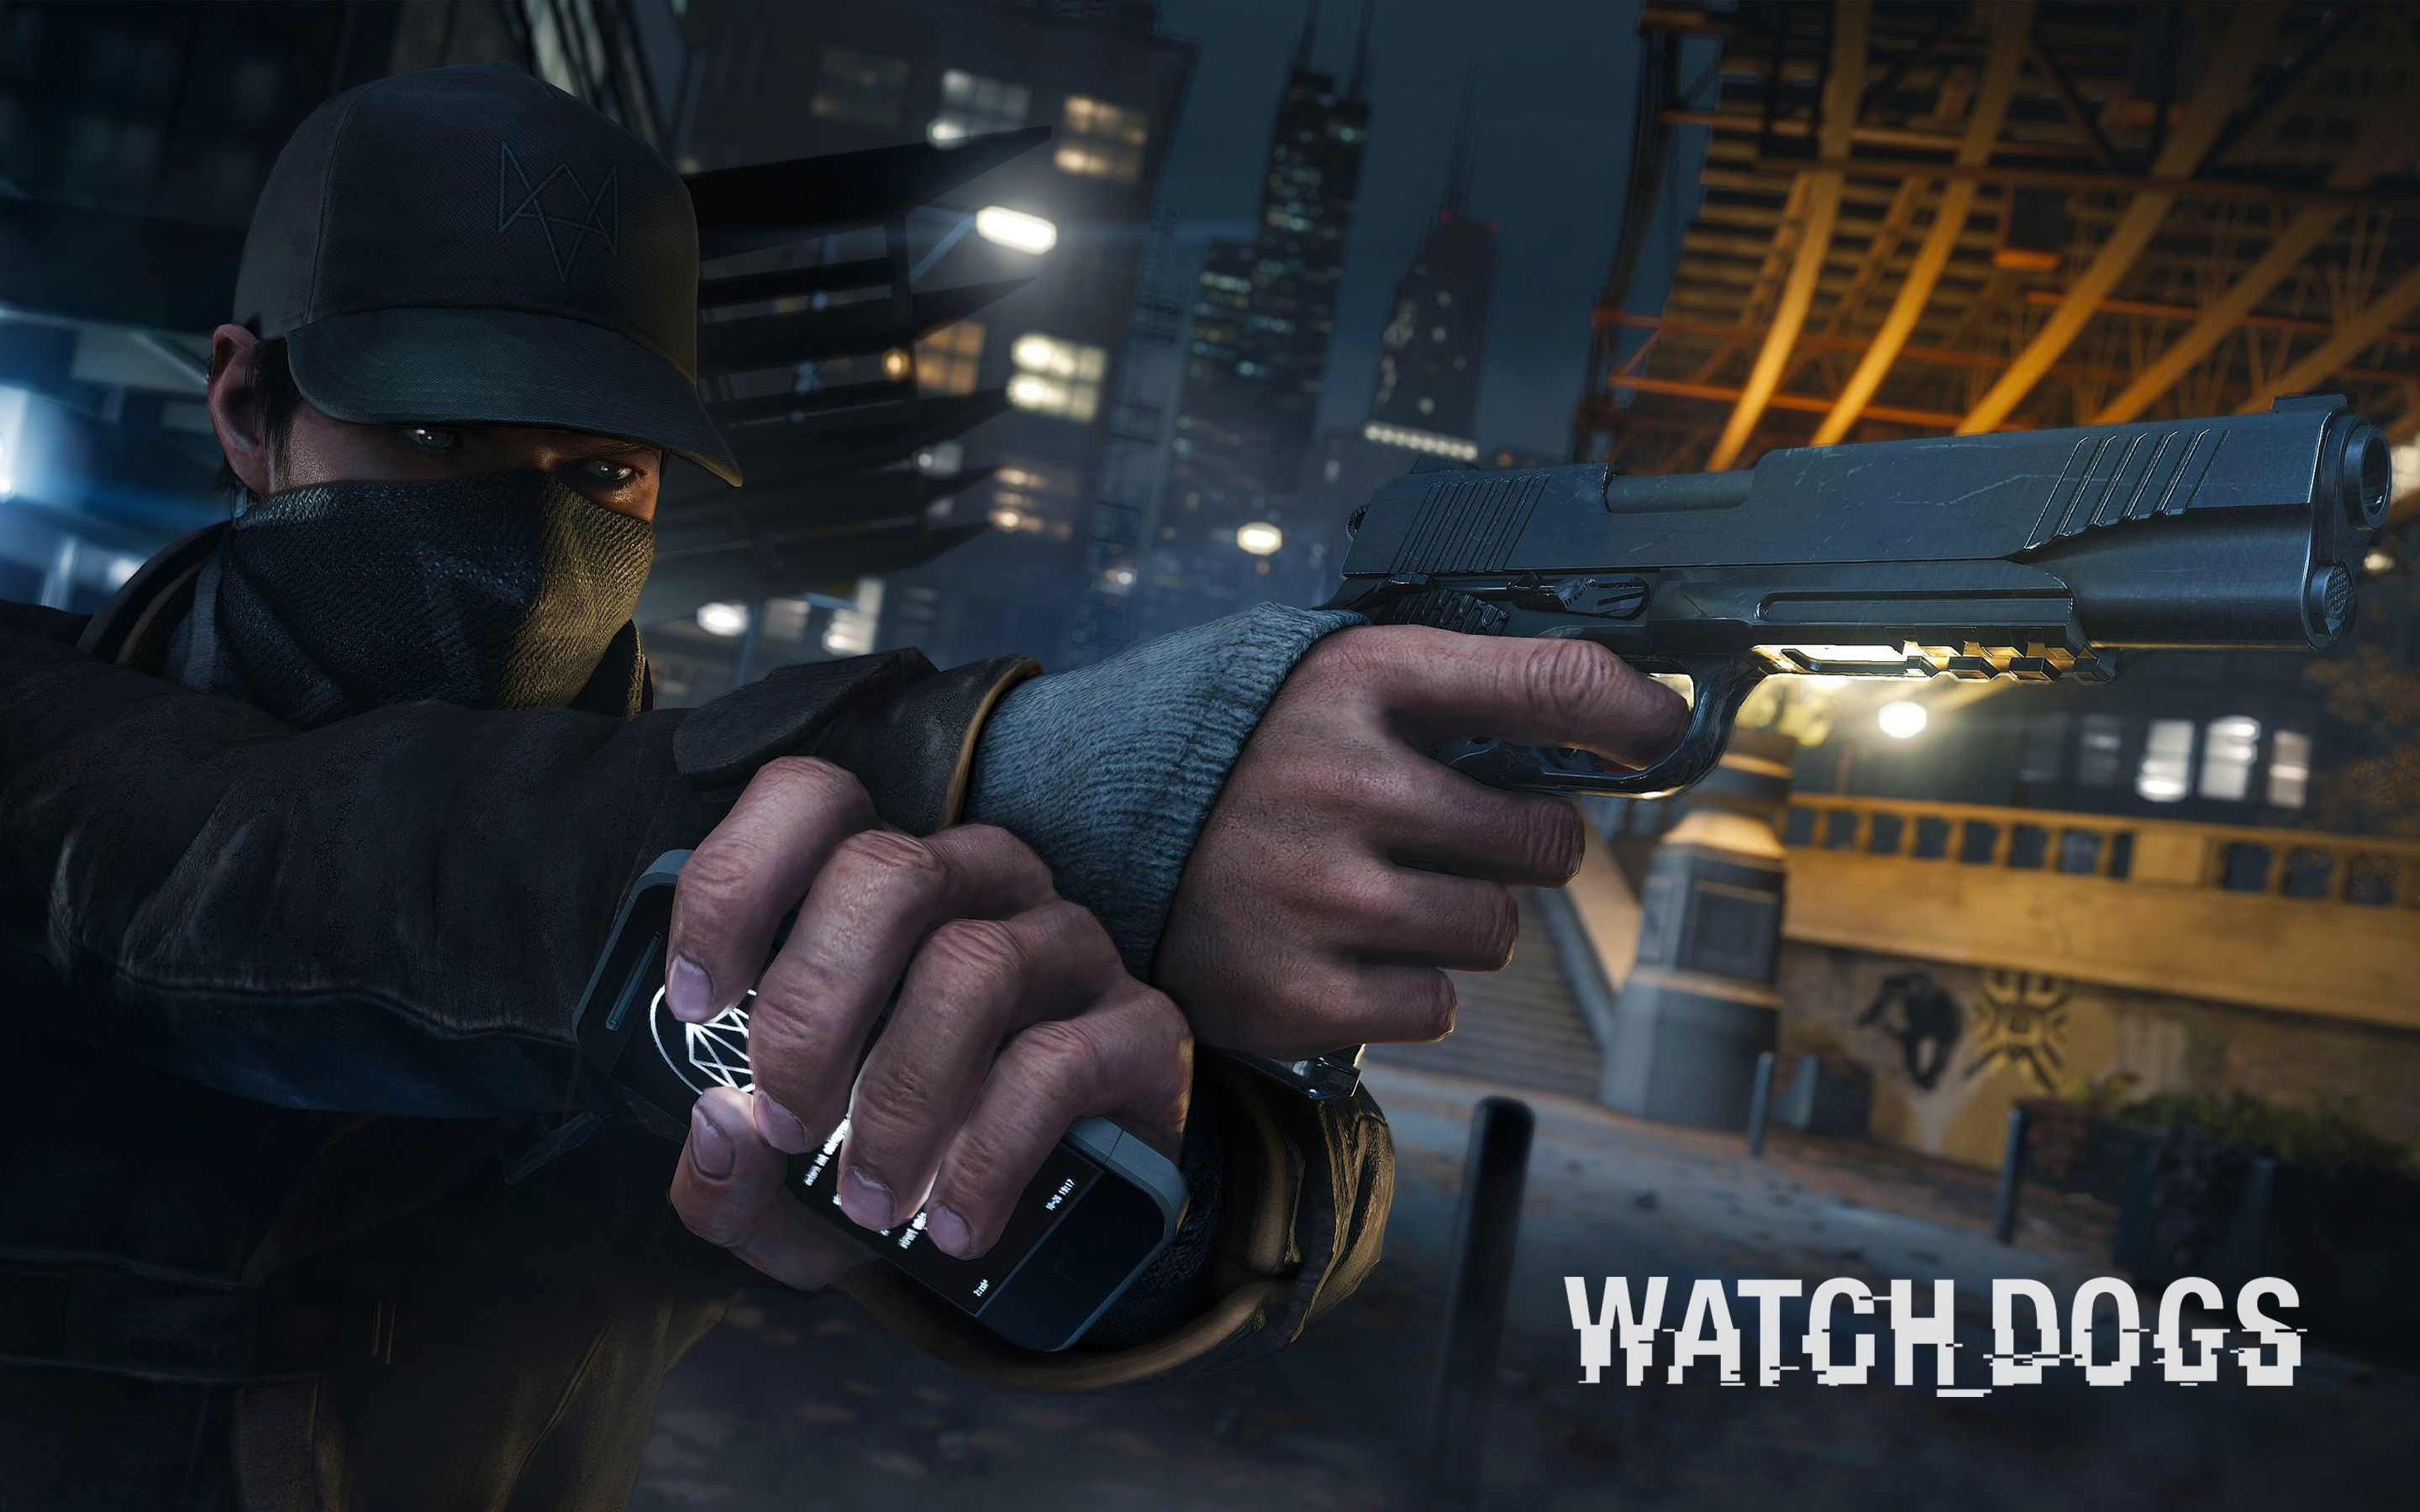 Watch Dogs 2014 Game Wallpapers HD Wallpapers 2880x1800